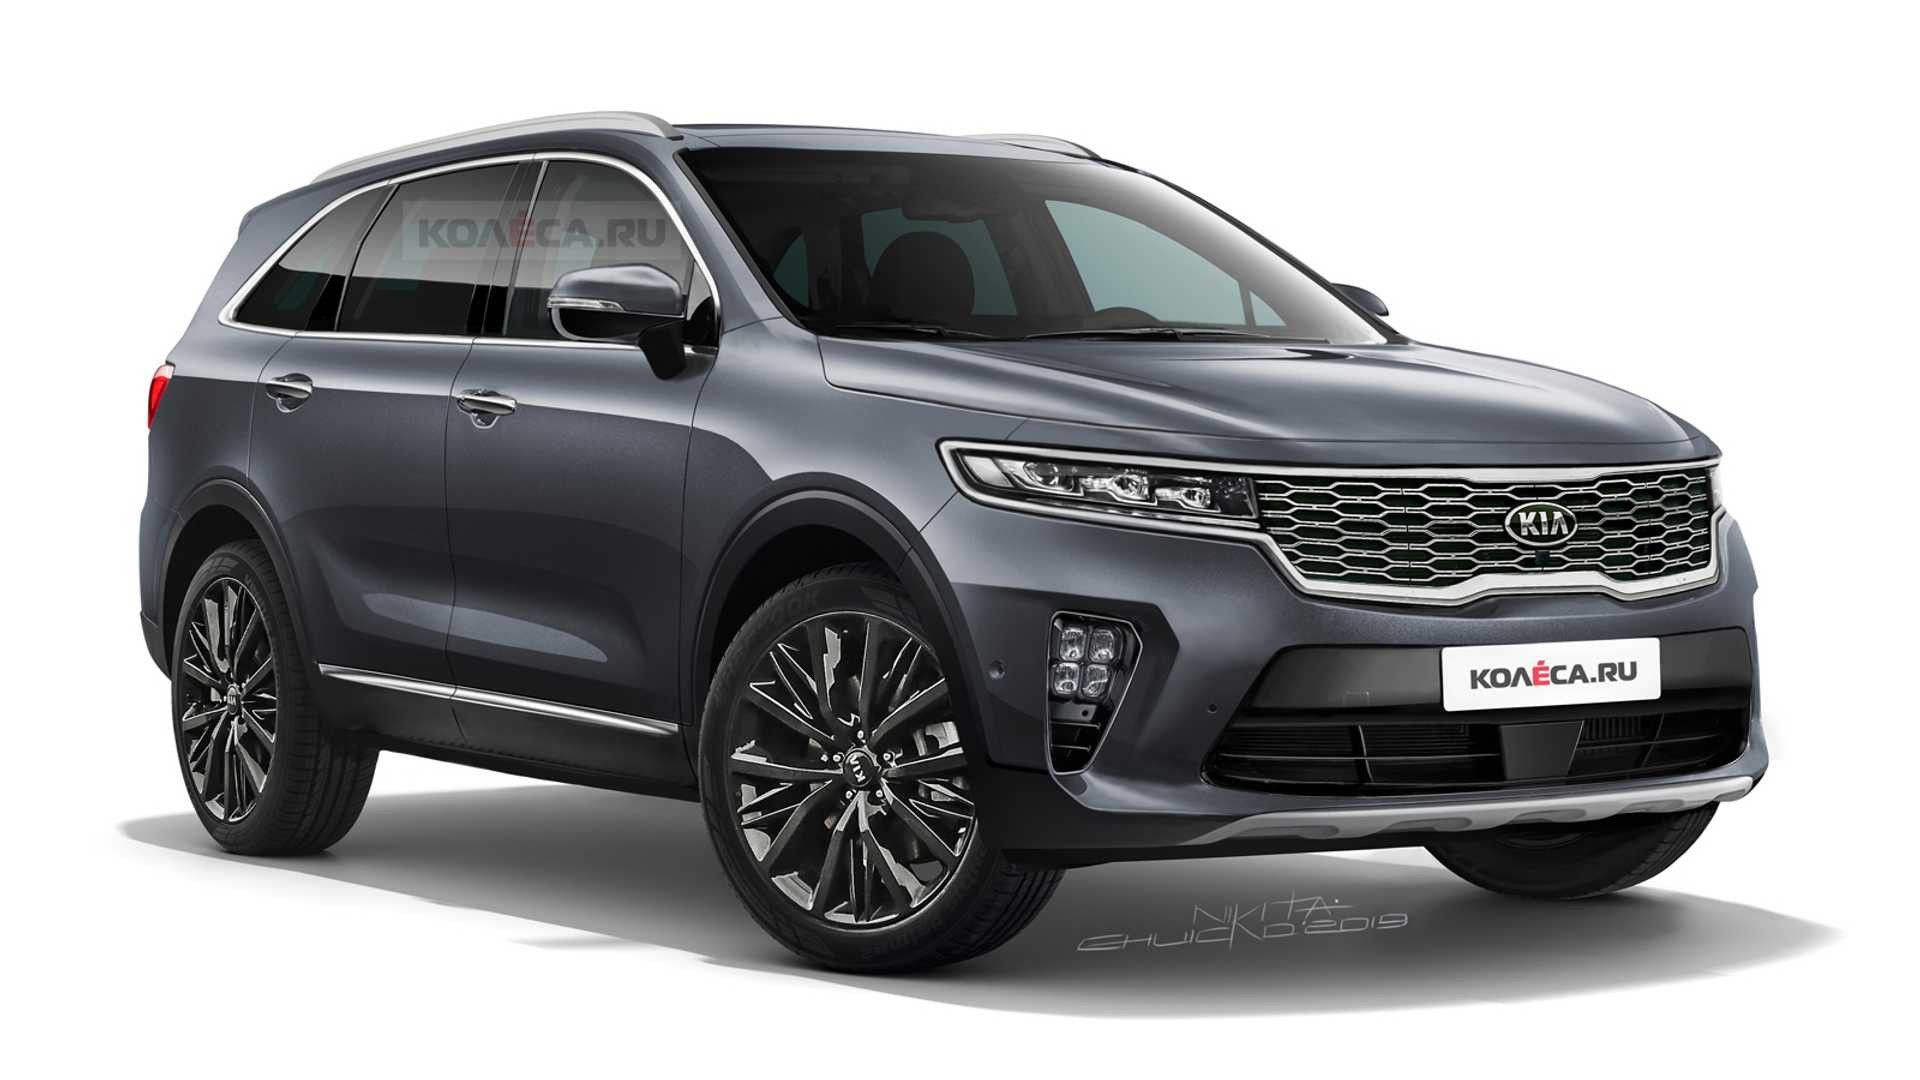 Kia A Sorento 2020 Price Check More At Http Dailymaza Me Kia A Sorento 2020 Price Di 2020